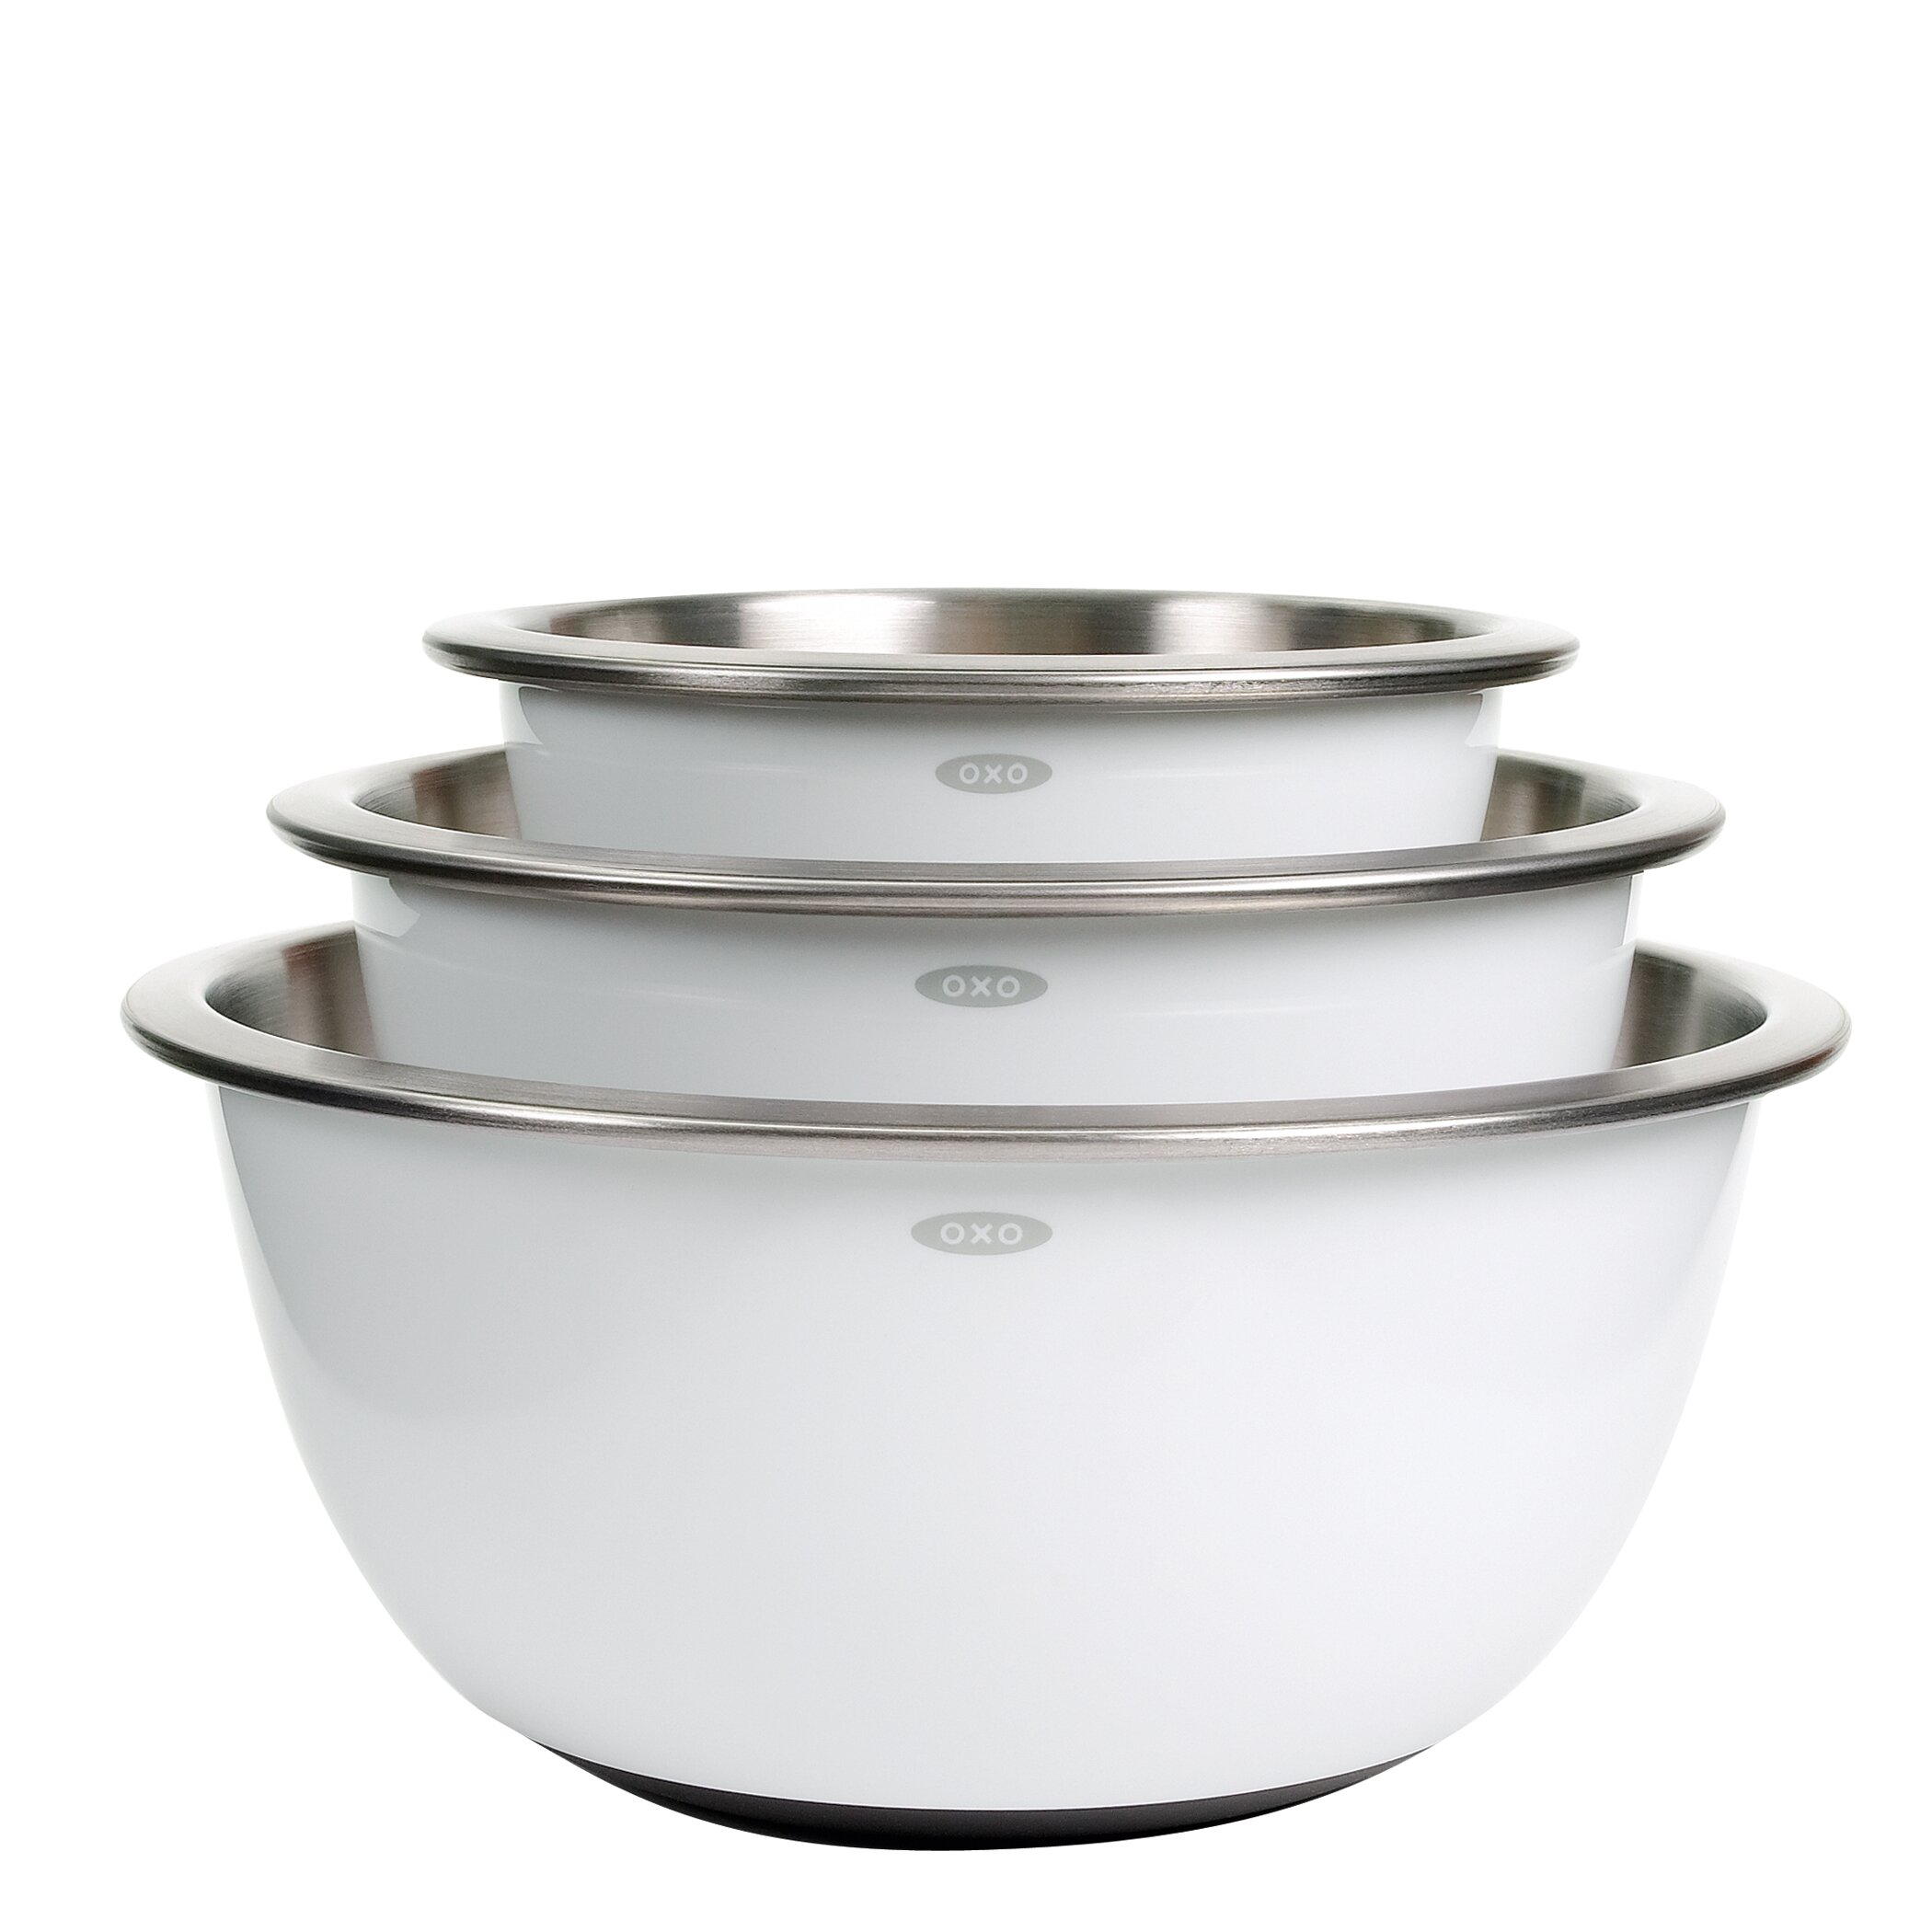 Cuisinart stainless steel mixing bowls with lids - Oxo Good Grips 3 Piece Stainless Steel Mixing Bowl Set